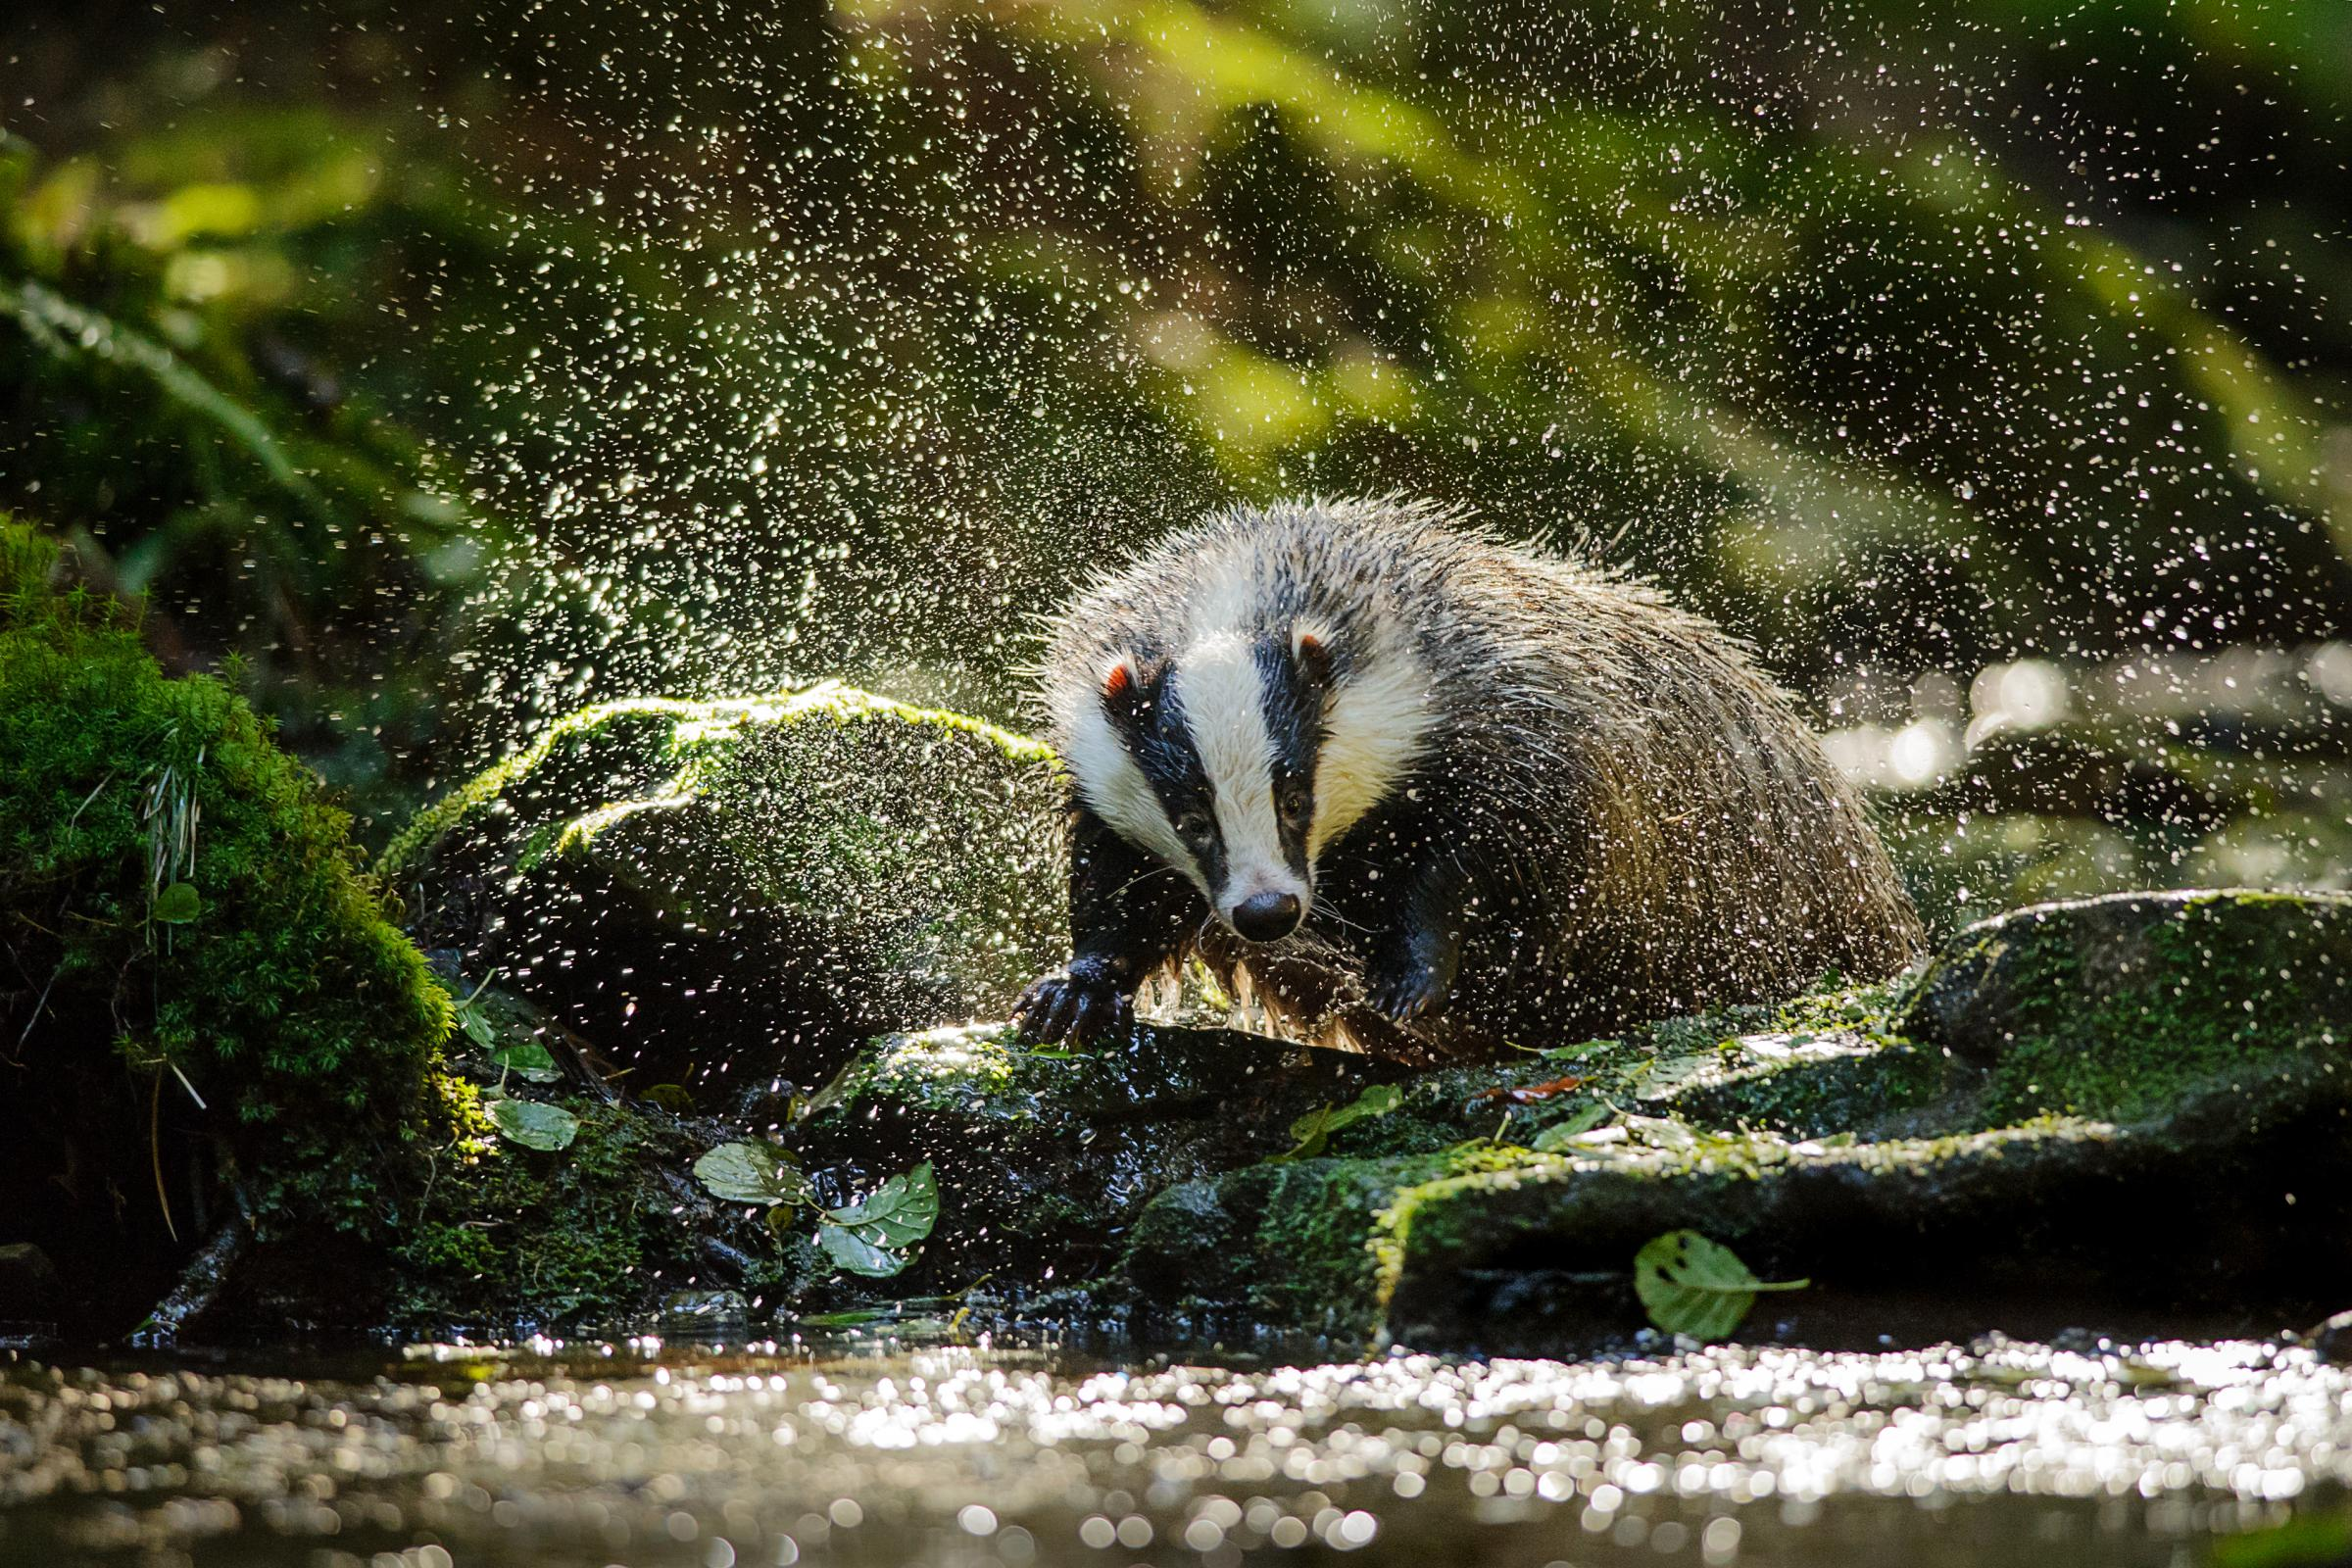 Concerns about the welfare of badgers trapped in cages